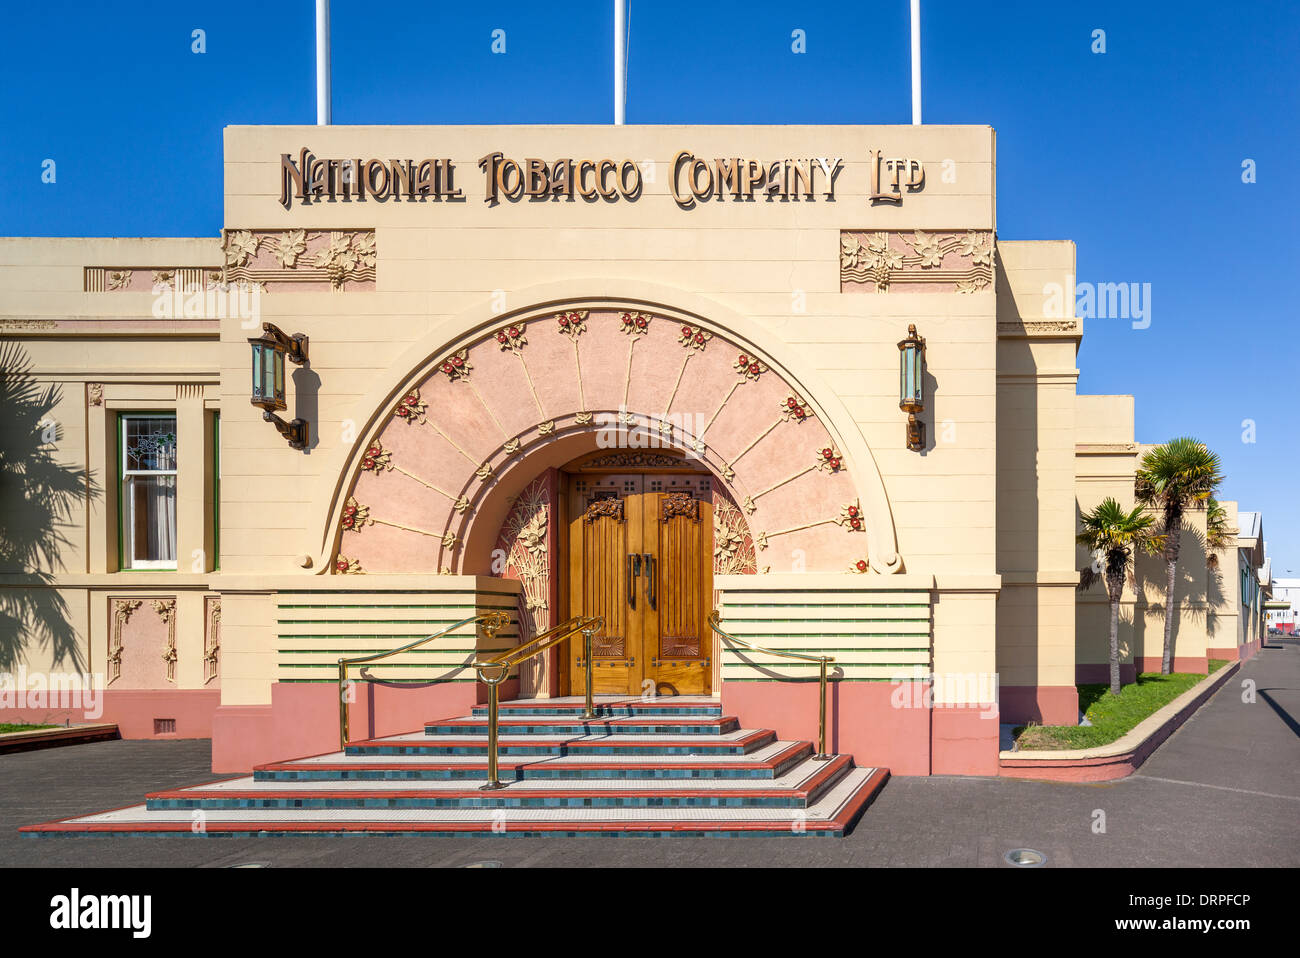 Napier Art Deco Famous National Tobacco Company Building, formerly Rothmans Building. Napier Ahuriri, New Zealand North Island - Stock Image